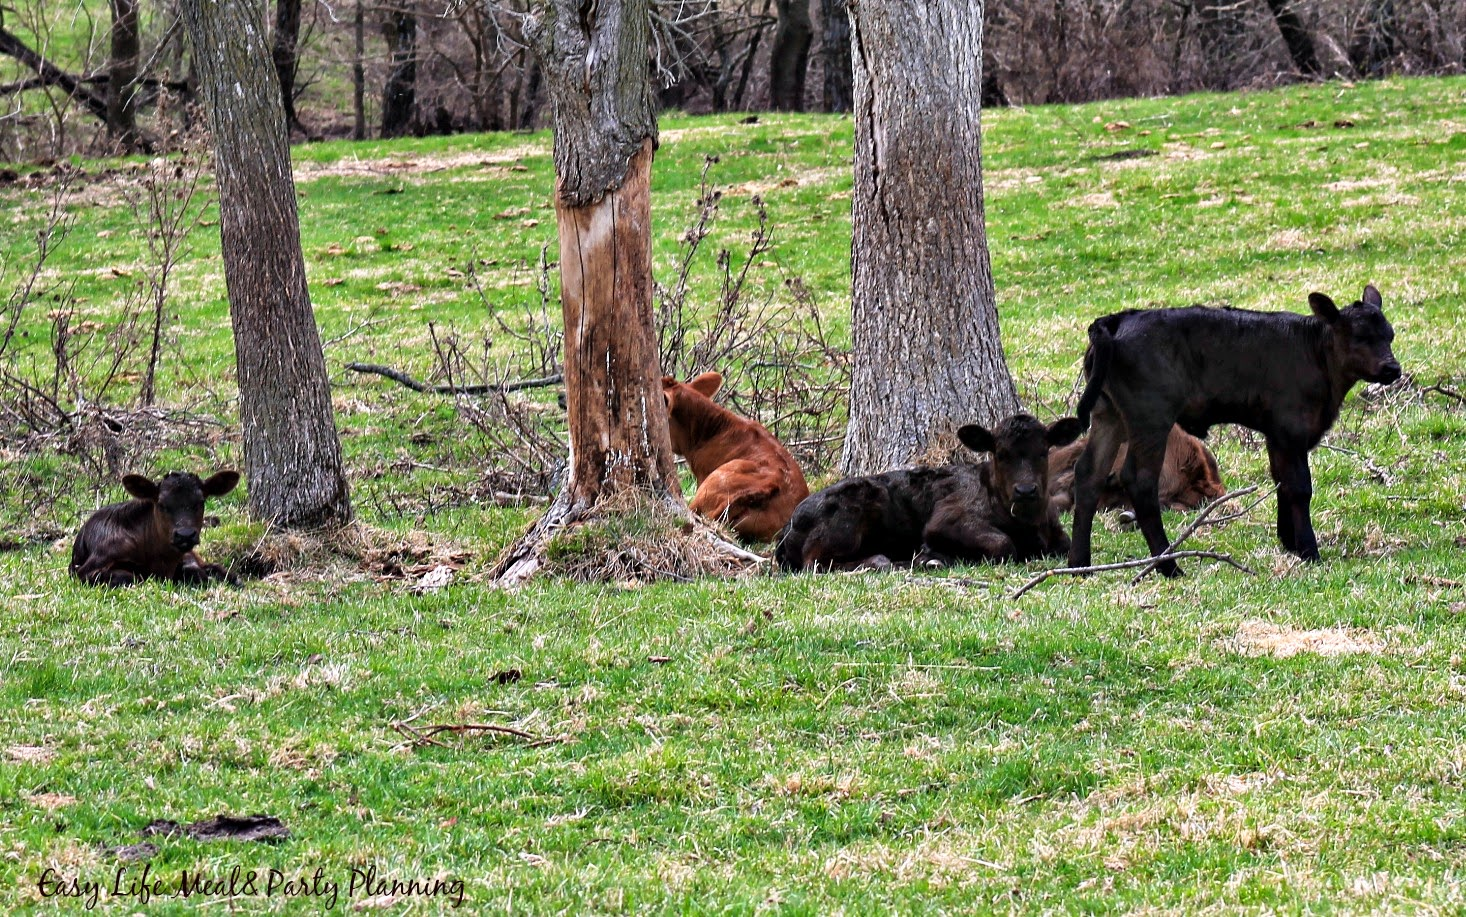 Easter on the Farm baby calves - Easy Life Meal & Party Planning